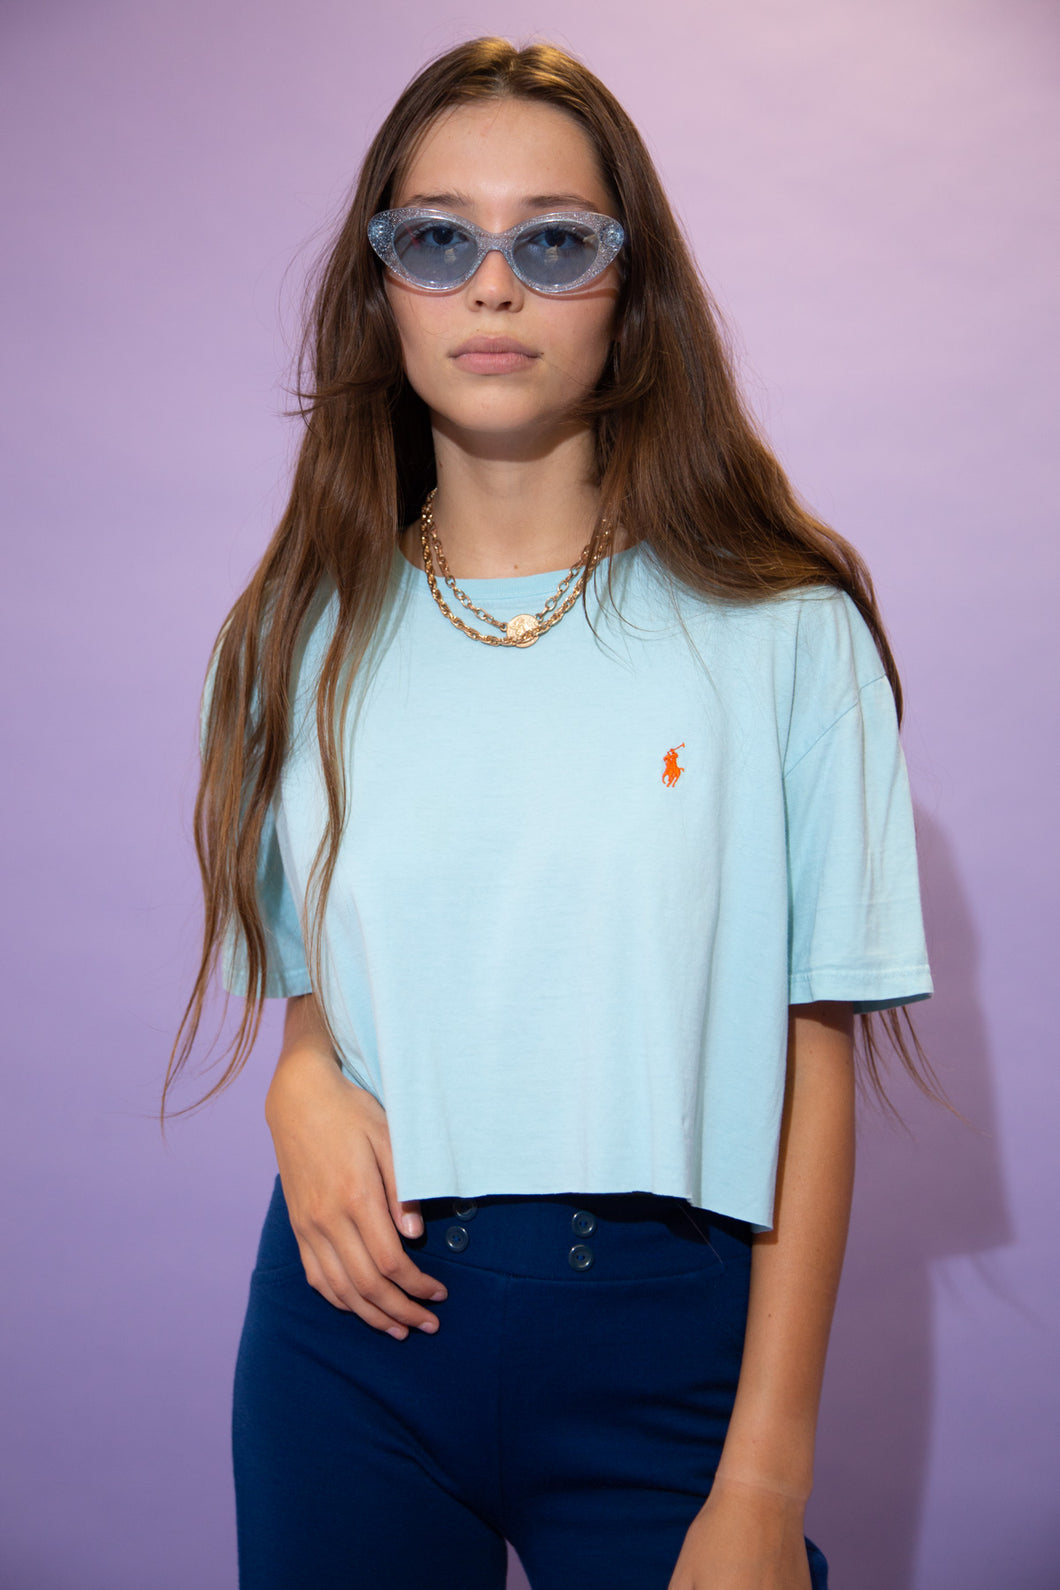 Baby blue in colour, this tee has an orange embroidered Ralph Lauren logo on the left chest. Cropped to keep it cute.